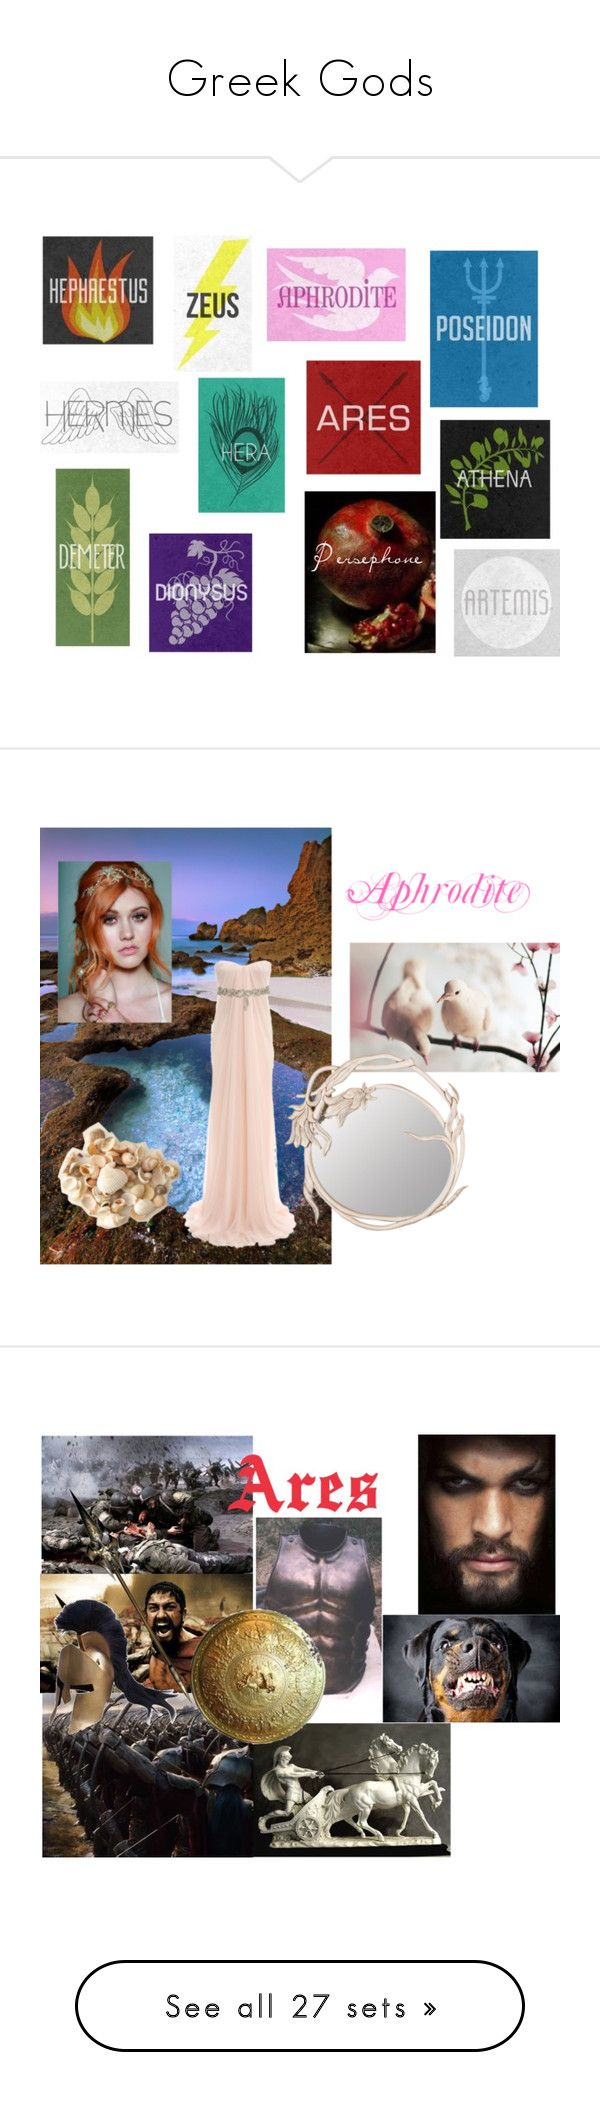 Greek Gods by emma-frost-98 on Polyvore featuring greekgods, art, Alexander McQueen, Adonis Pauli, Temperley London, men's fashion, menswear, teen wolf, people - crystal reed and crystal reed